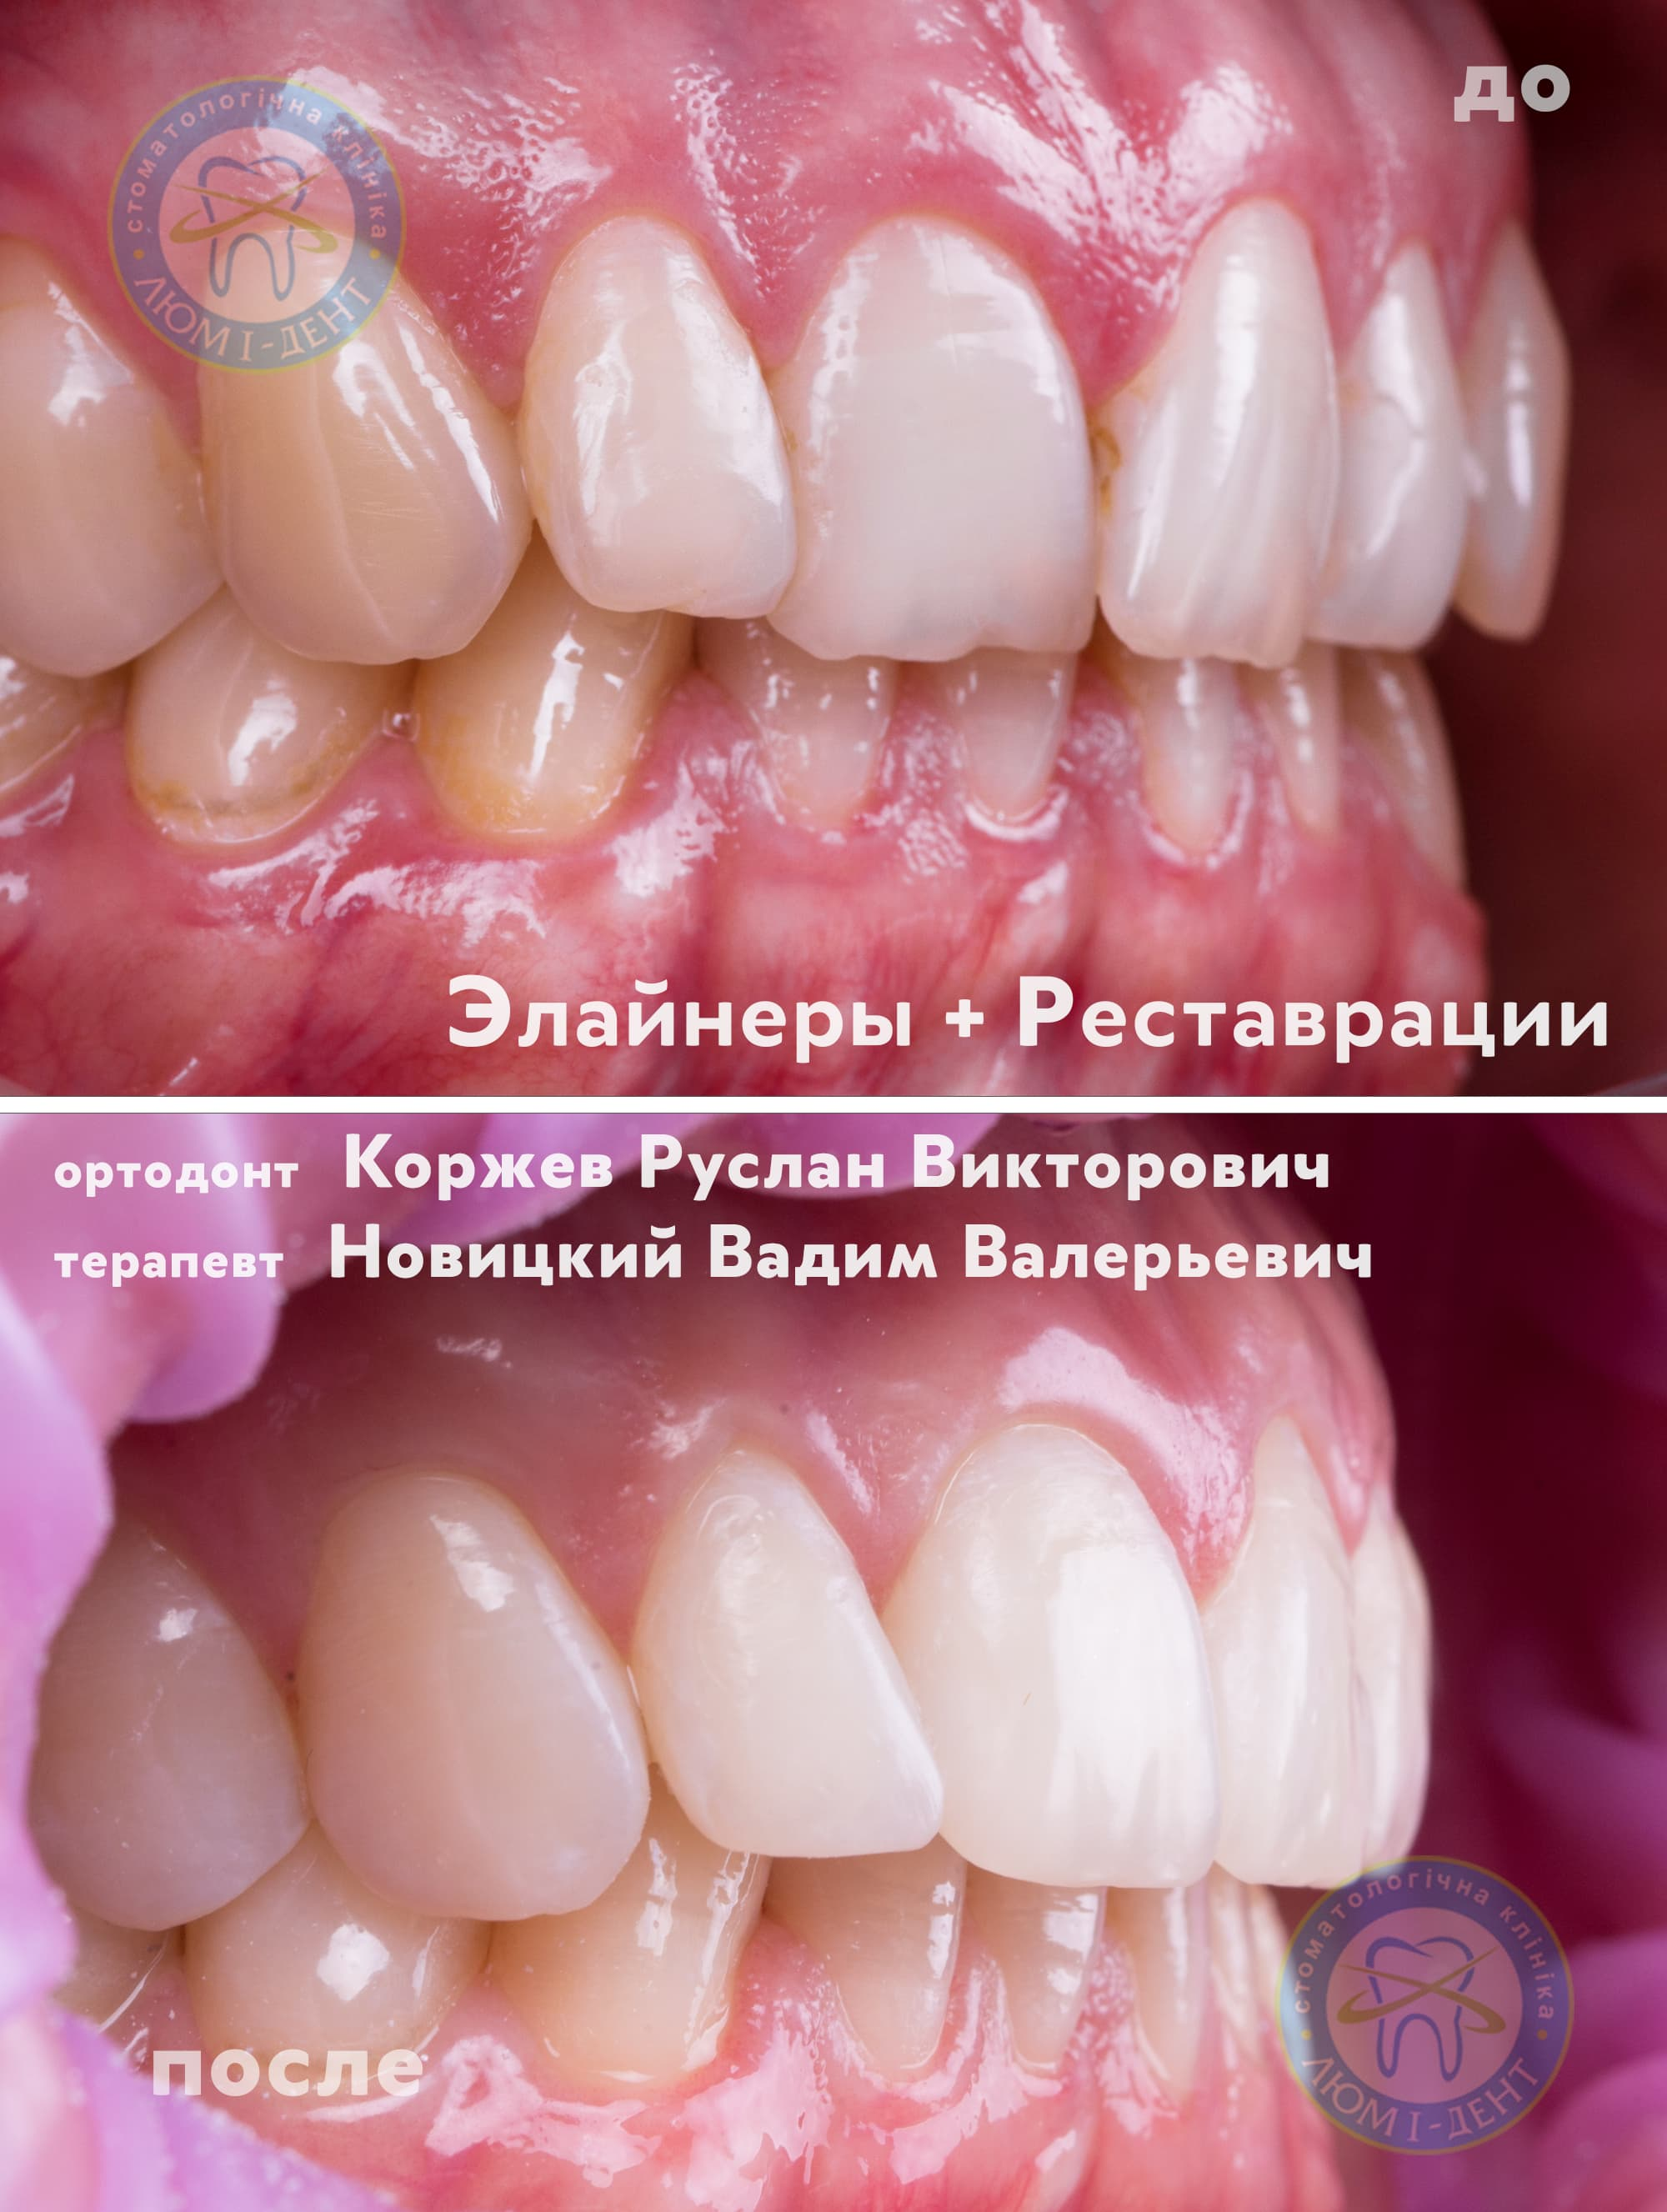 Treatment of malocclusion teeth photo Kiev Lumi-Dent